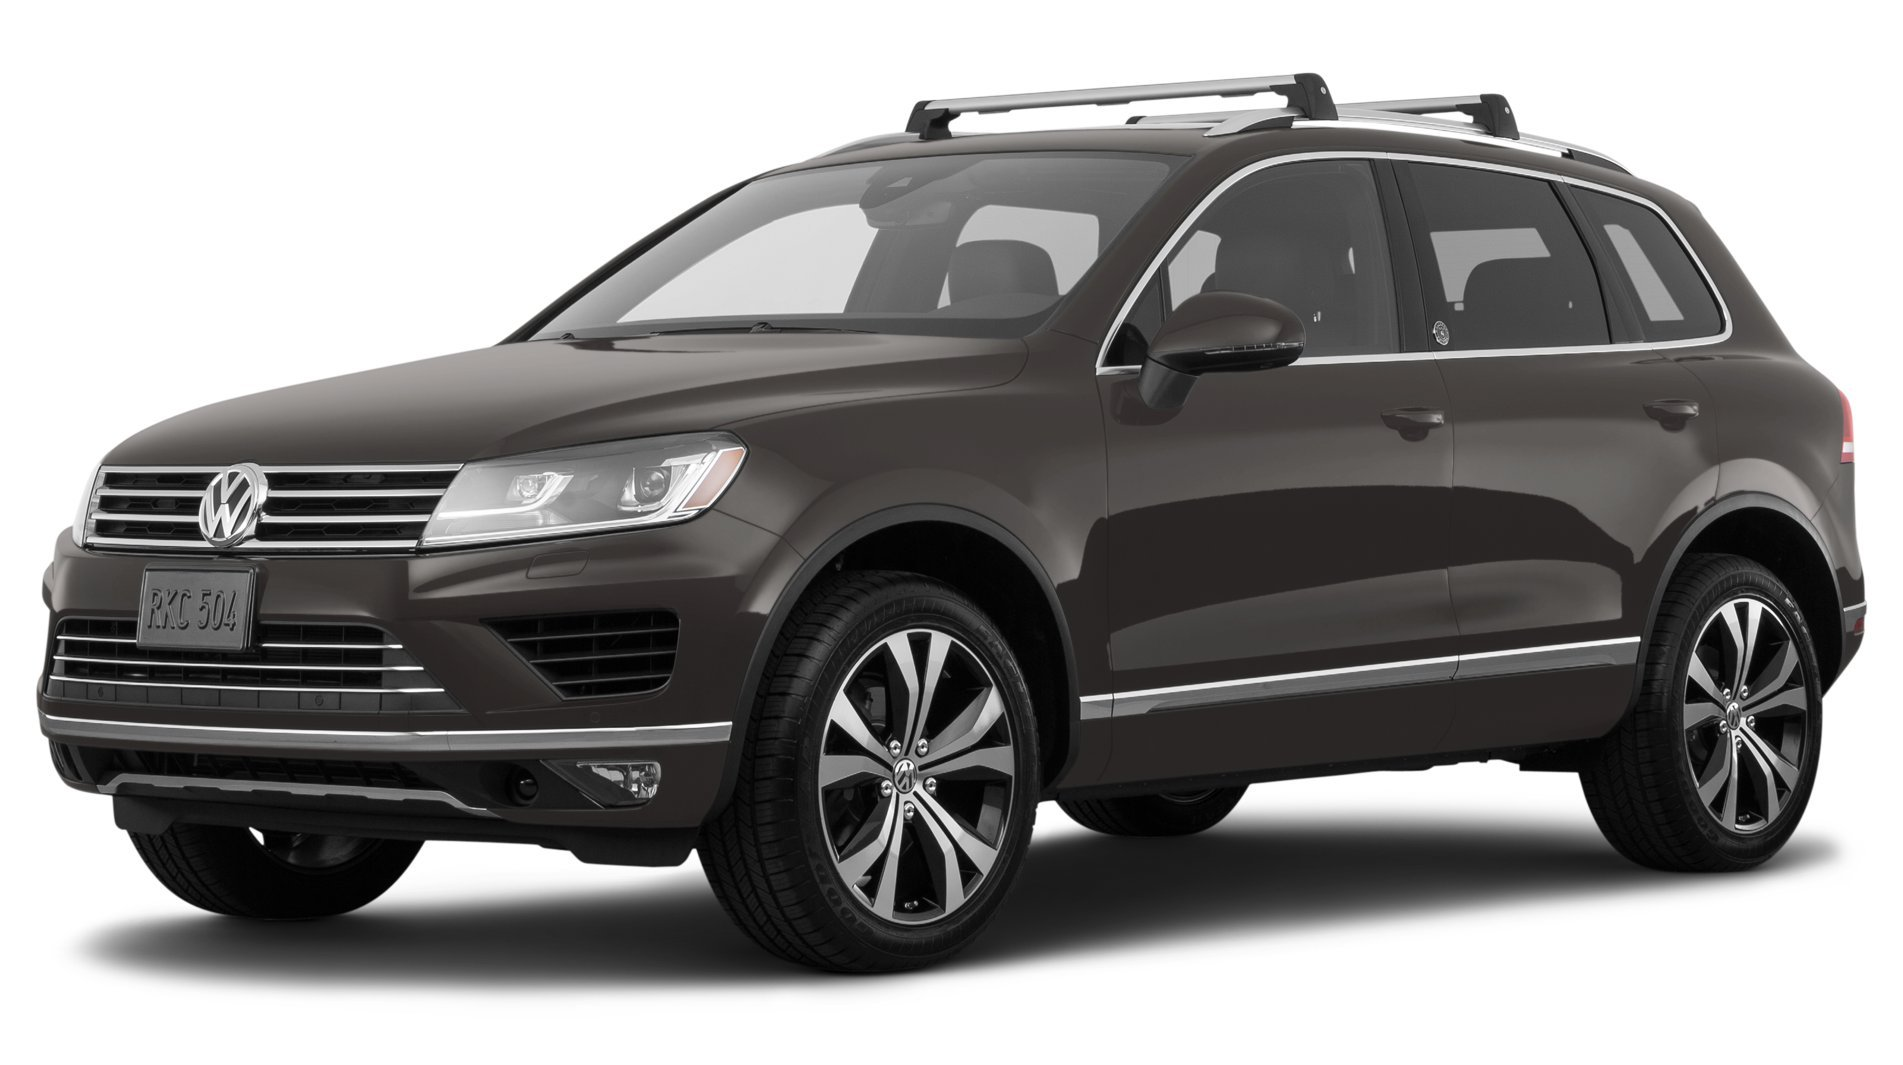 2017 volkswagen touareg reviews images and specs vehicles. Black Bedroom Furniture Sets. Home Design Ideas